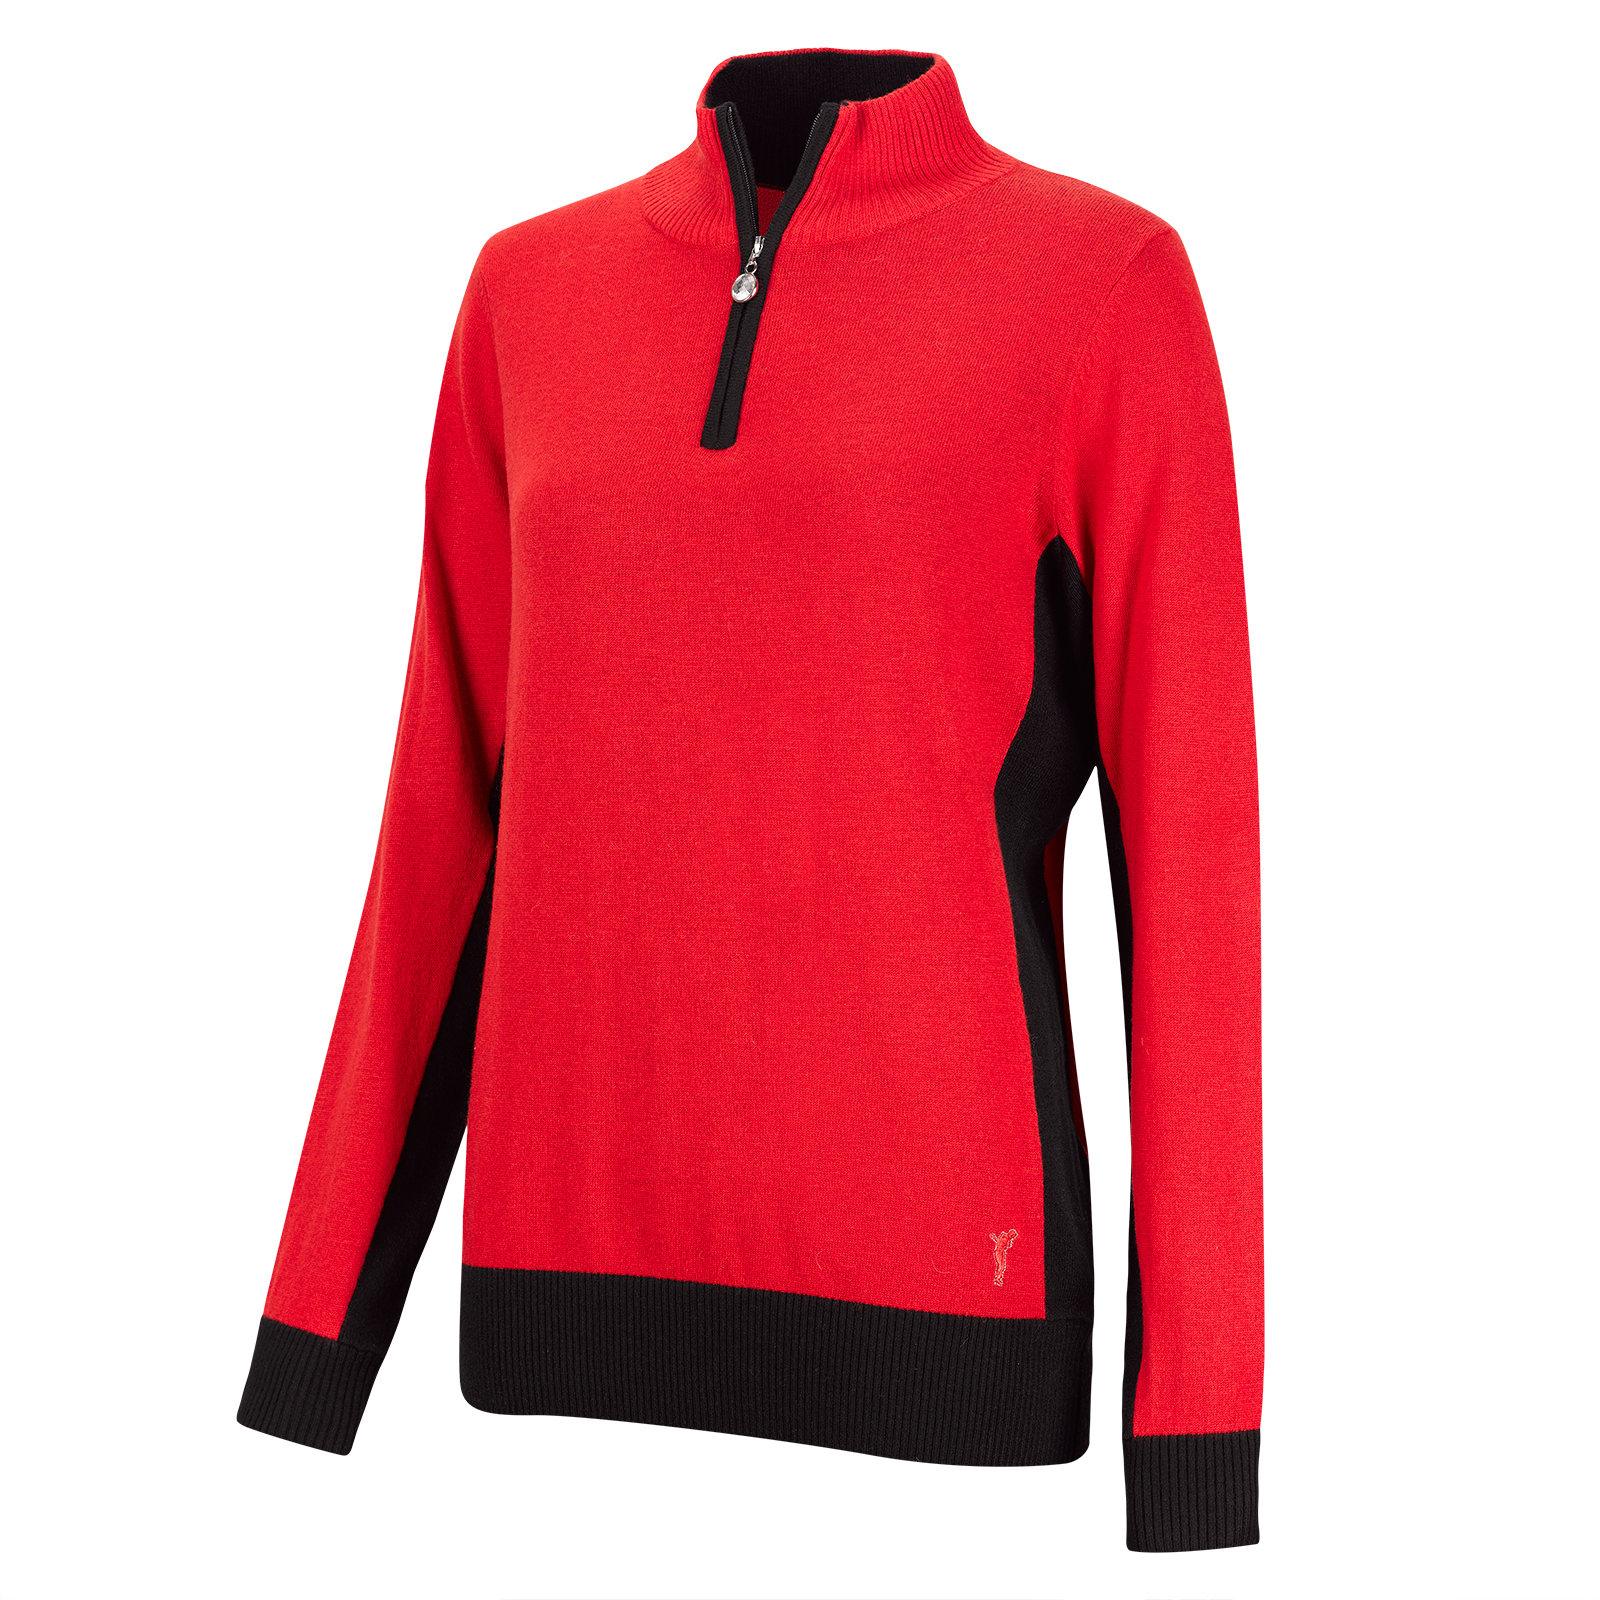 Damen Cold Protection Troyer aus edler Merino-Blend